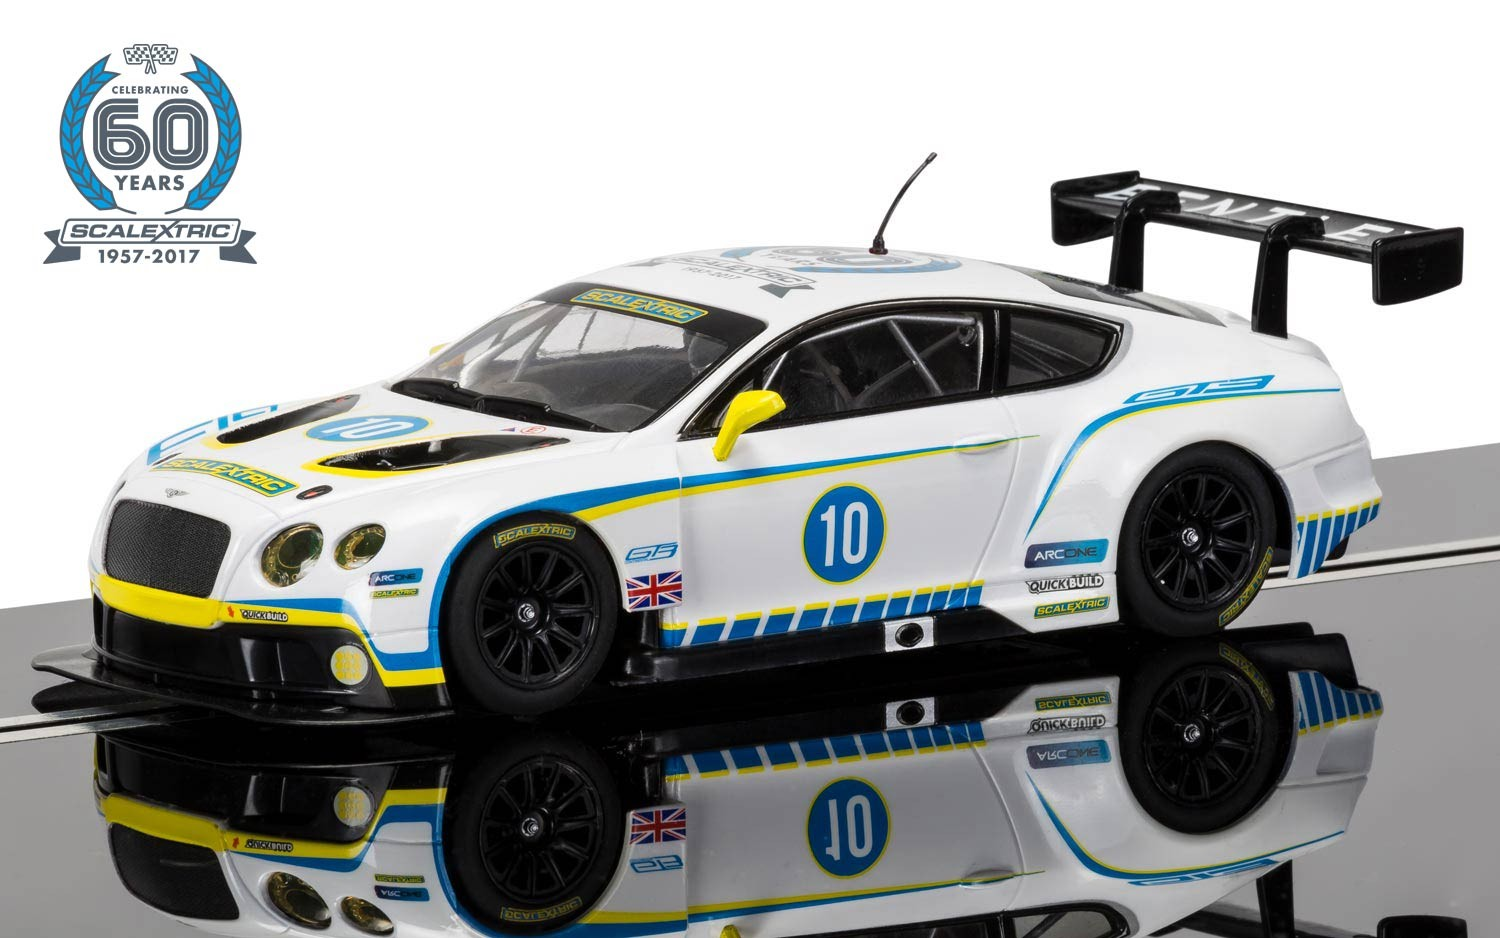 60th Anniv Collection - 2010s Bentley Continental GT3 LE #10 1/32 Slot Car